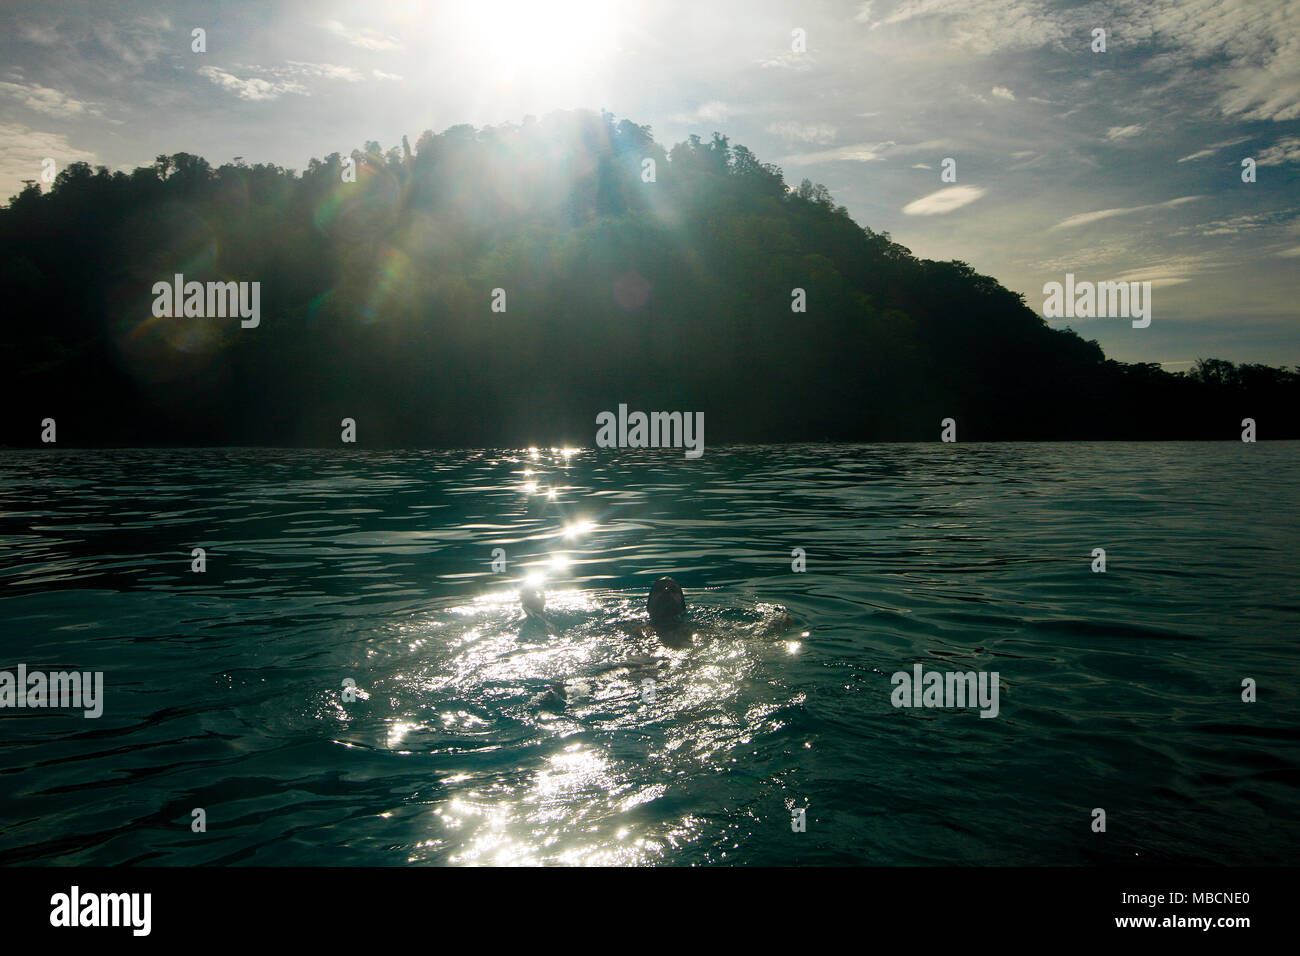 Inhabited island. Gorontalo, Sulawesi, Indonesia - Stock Image